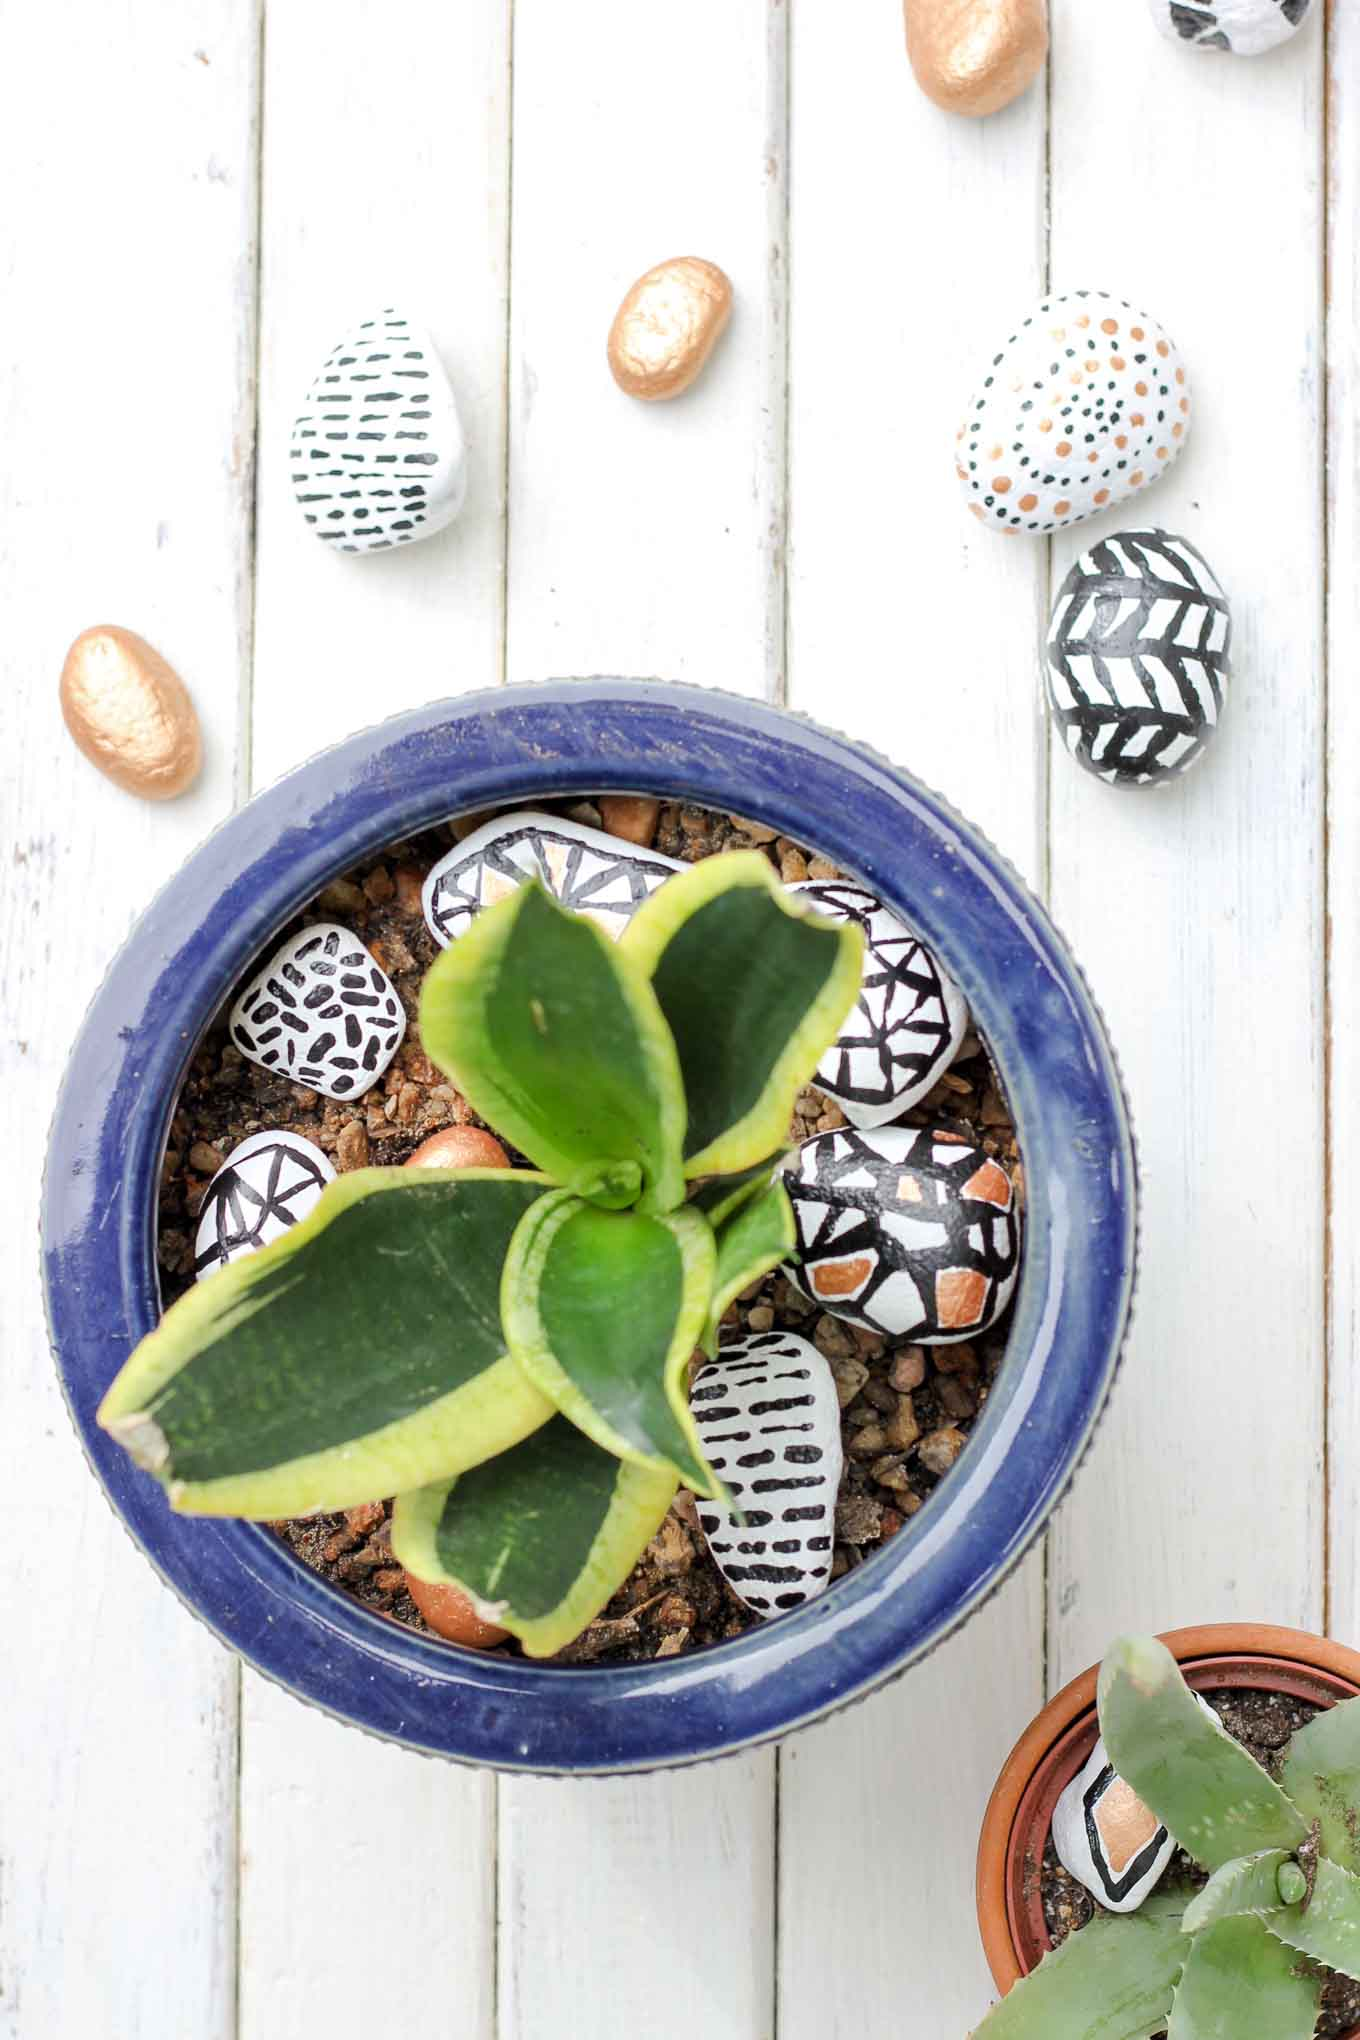 These DIY hand painted rocks are a simple and budget-friendly craft that add pizazz to potted plants and gardens. Find some stones, grab your paint and dream up some designs! | MakeAndDoCrew.com